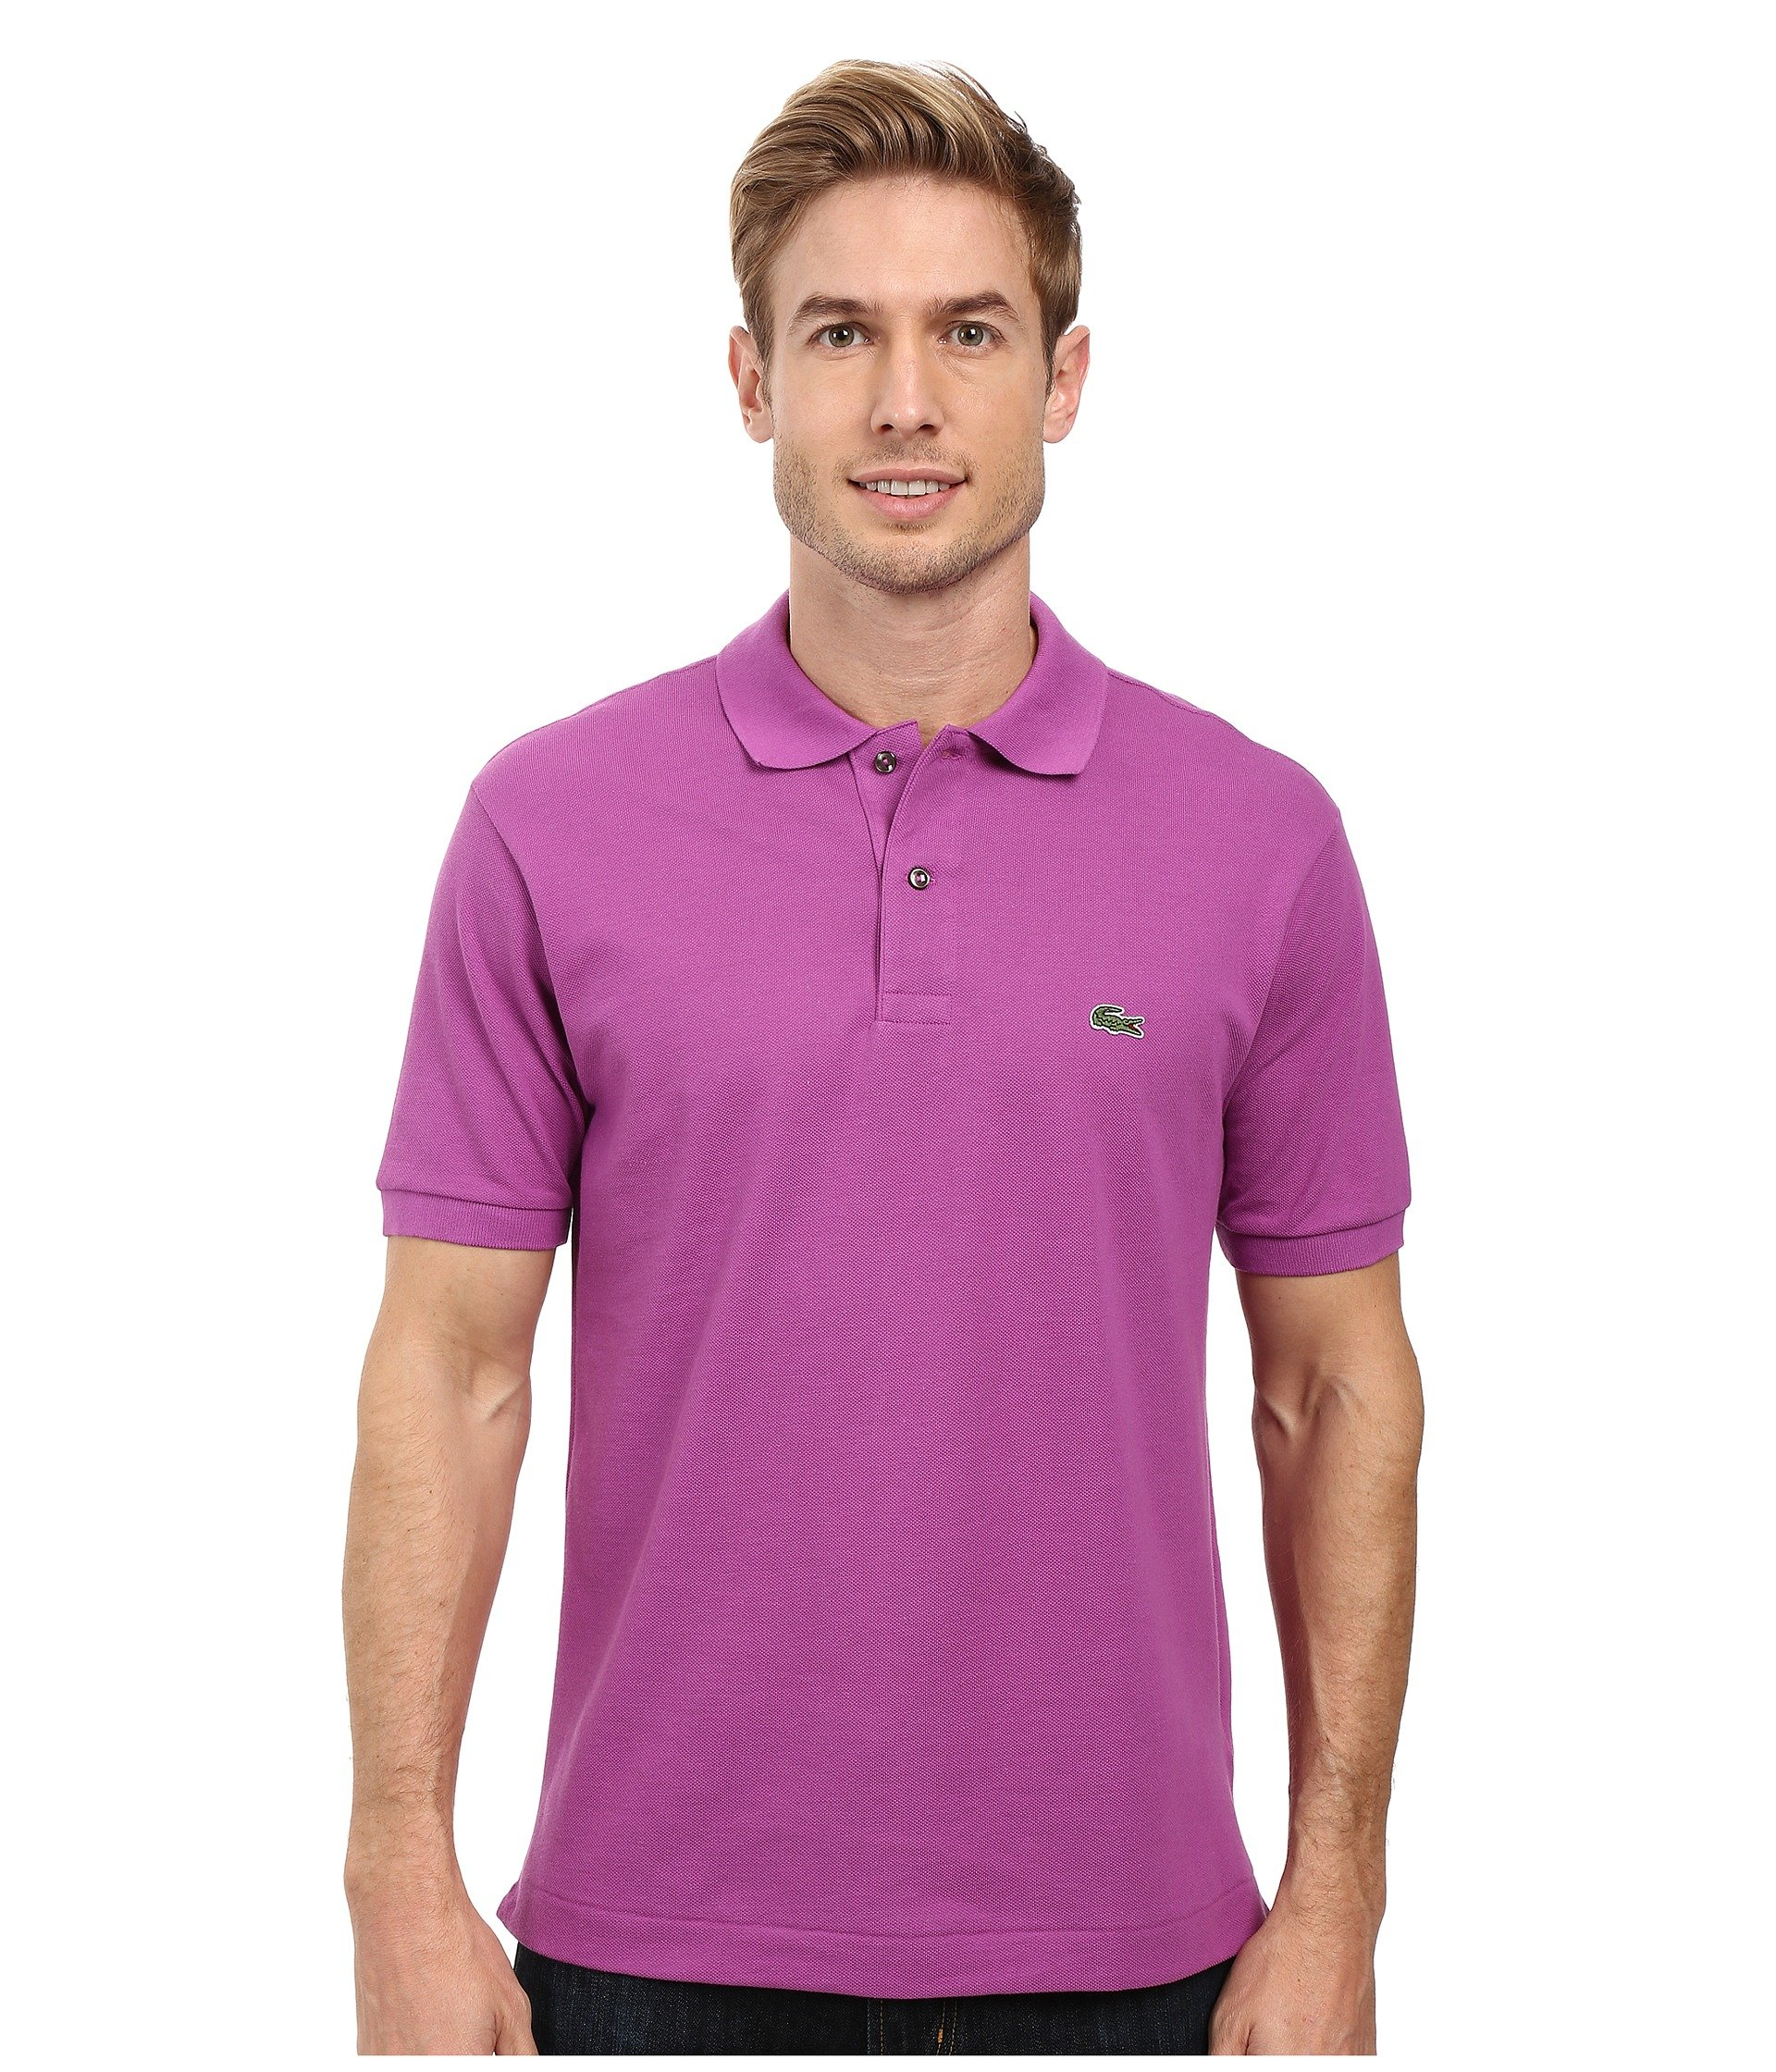 5ee514f1a74 Galleon - Lacoste Men's L1212 Classic Pique Polo Shirt Irresistible Polo  Shirt 2